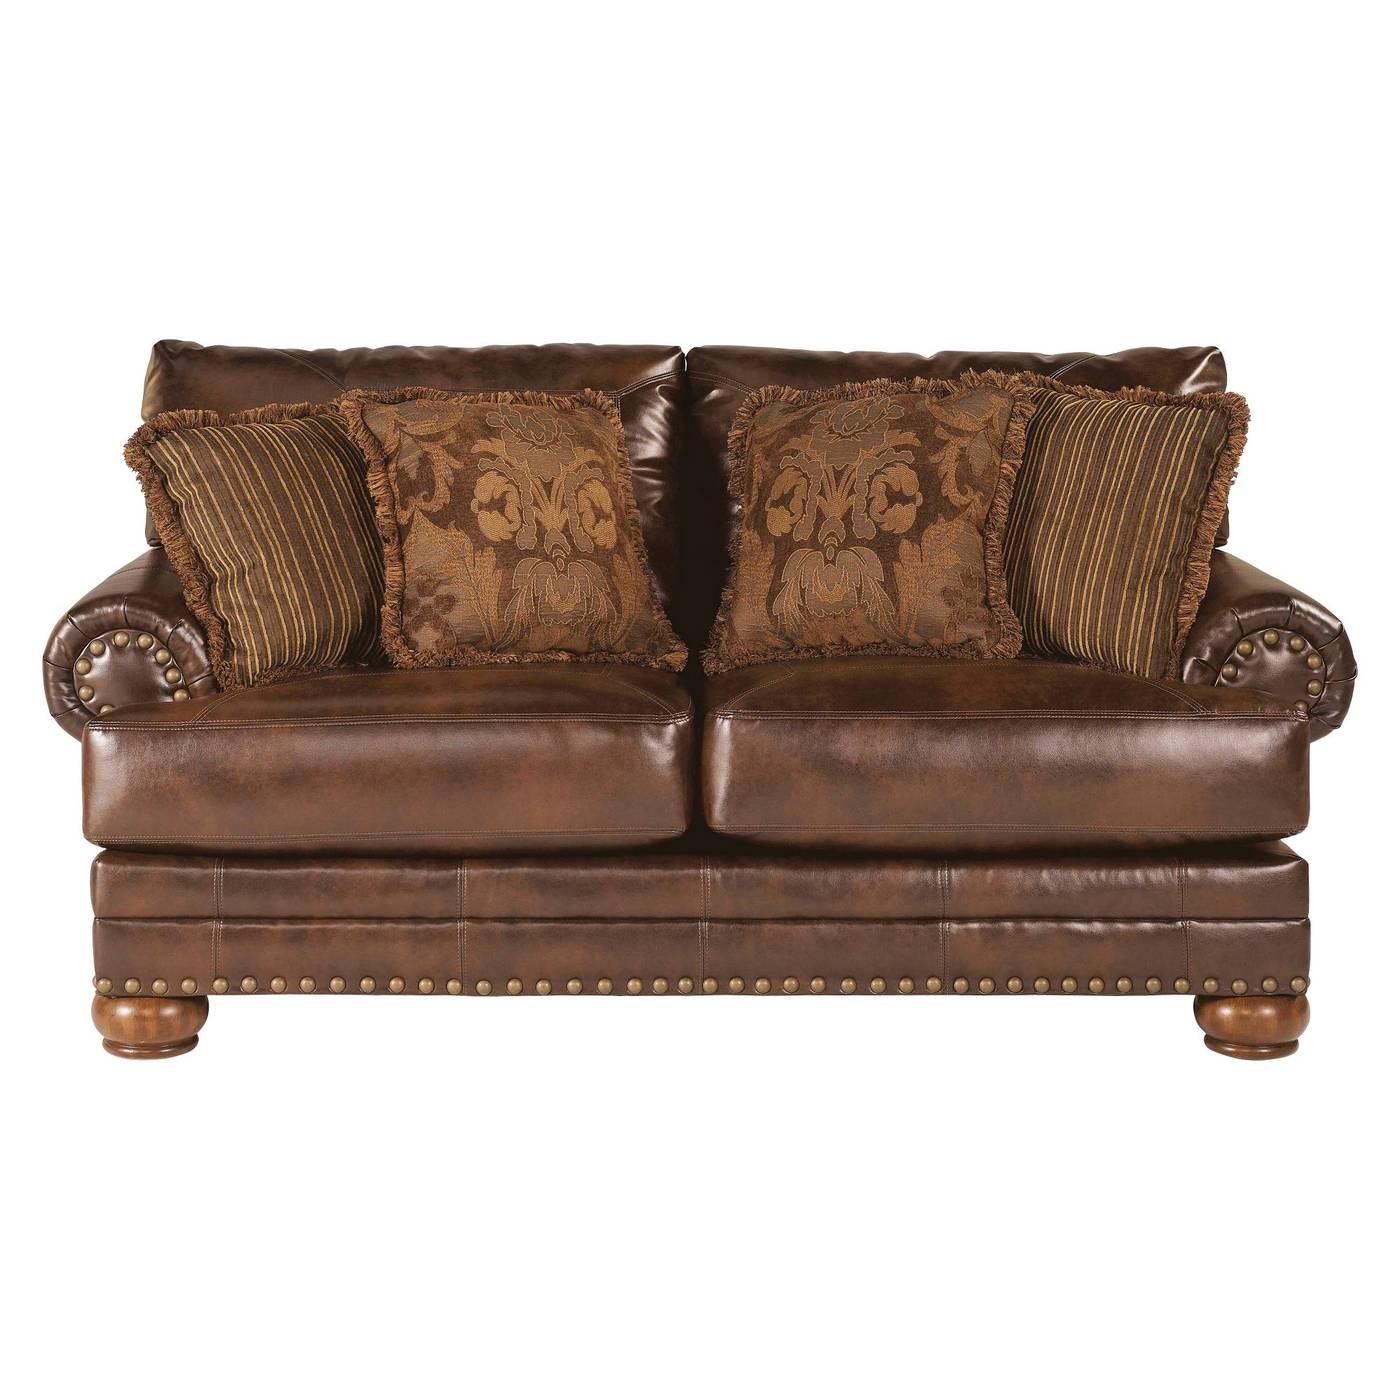 decorative pillows brown leather sofa i want to reupholster my loveseat ashley traditional living room